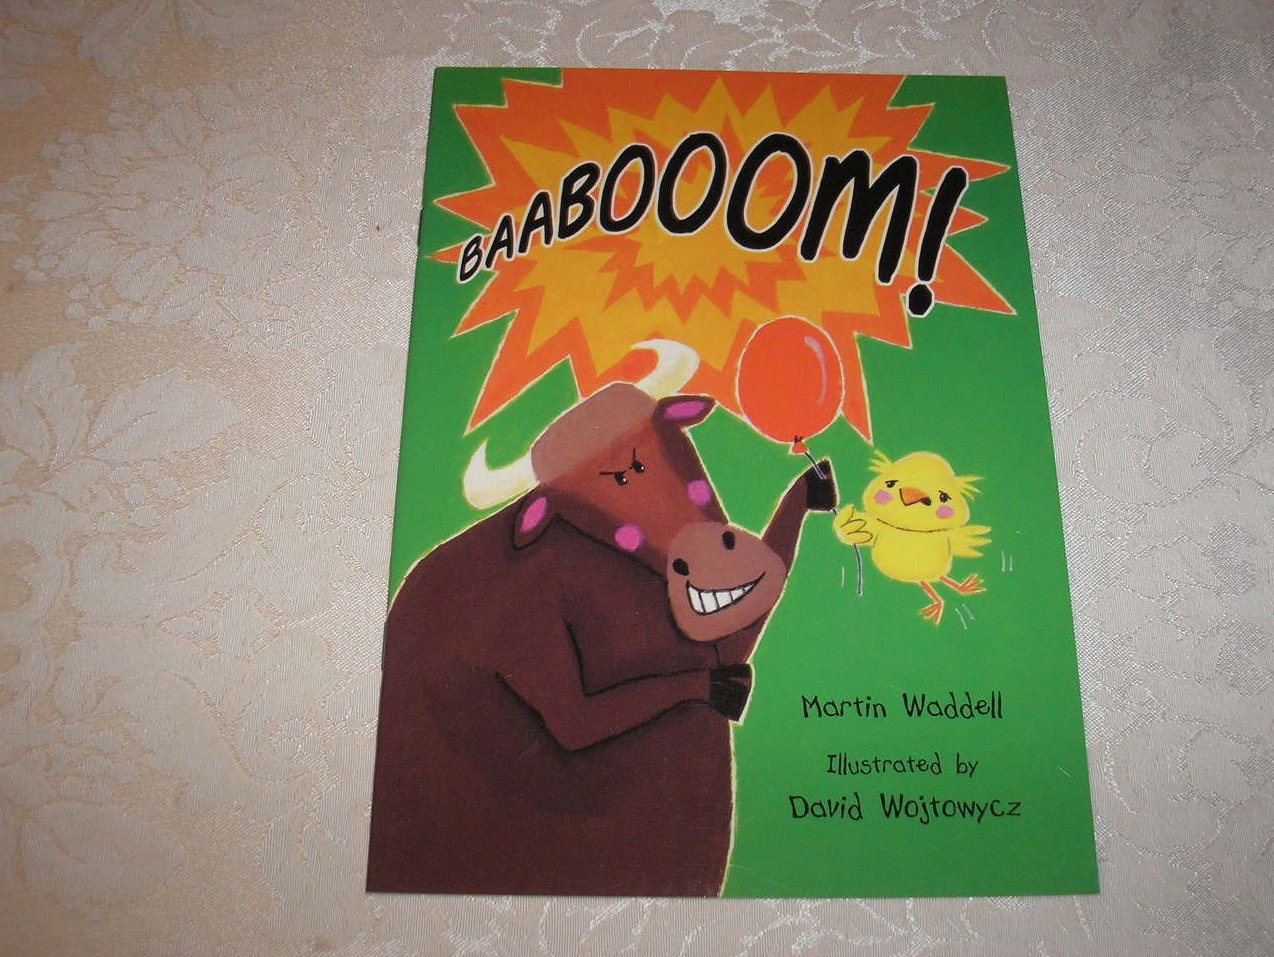 Baabooom! Martin Waddell David Wojtowycz Rigby Literacy very rare sc new